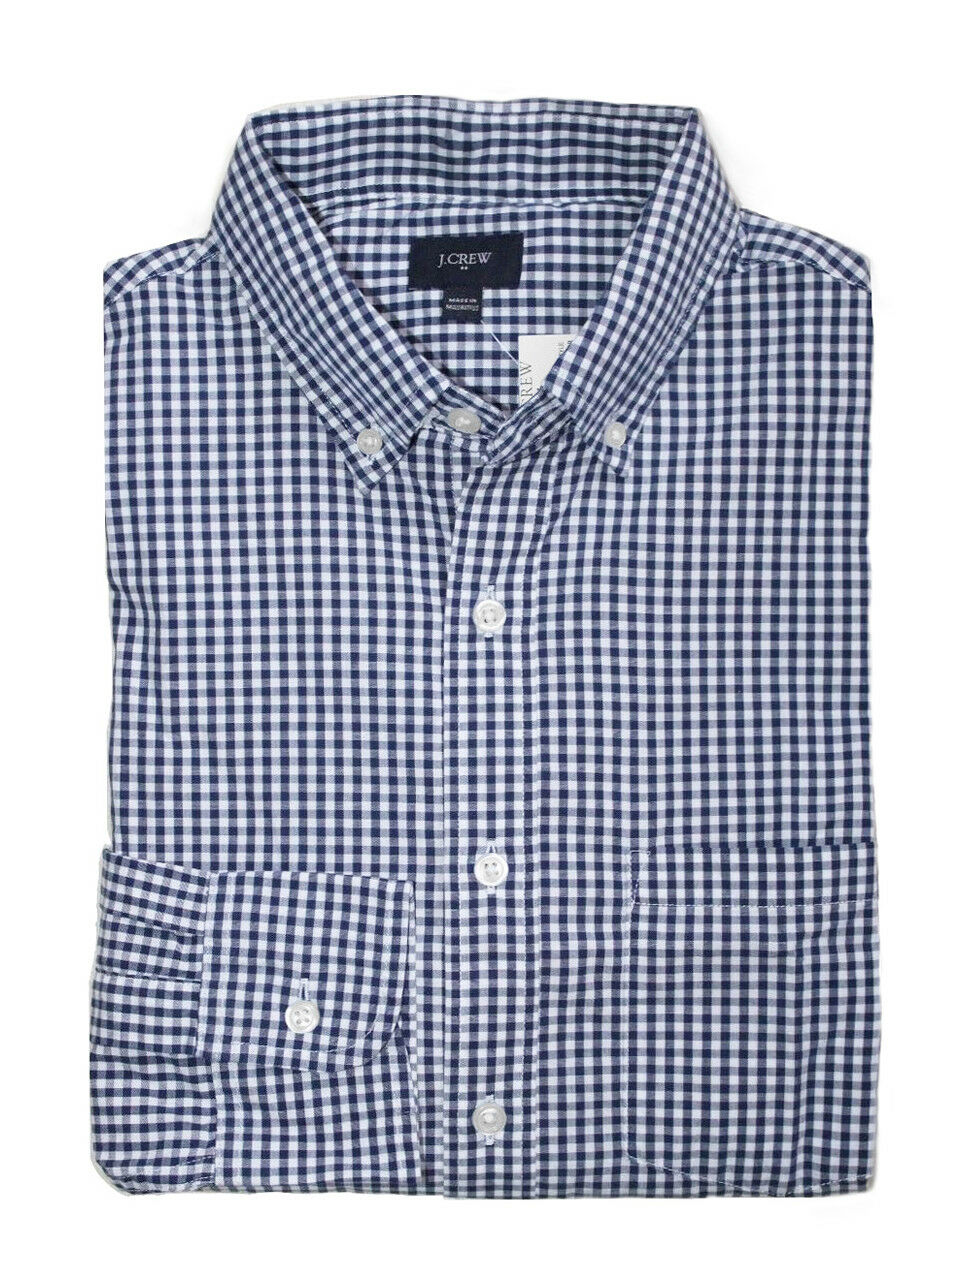 J.Crew Factory Mens M Regular Fit - Navy White Micro-Gingham Washed Cotton Shirt